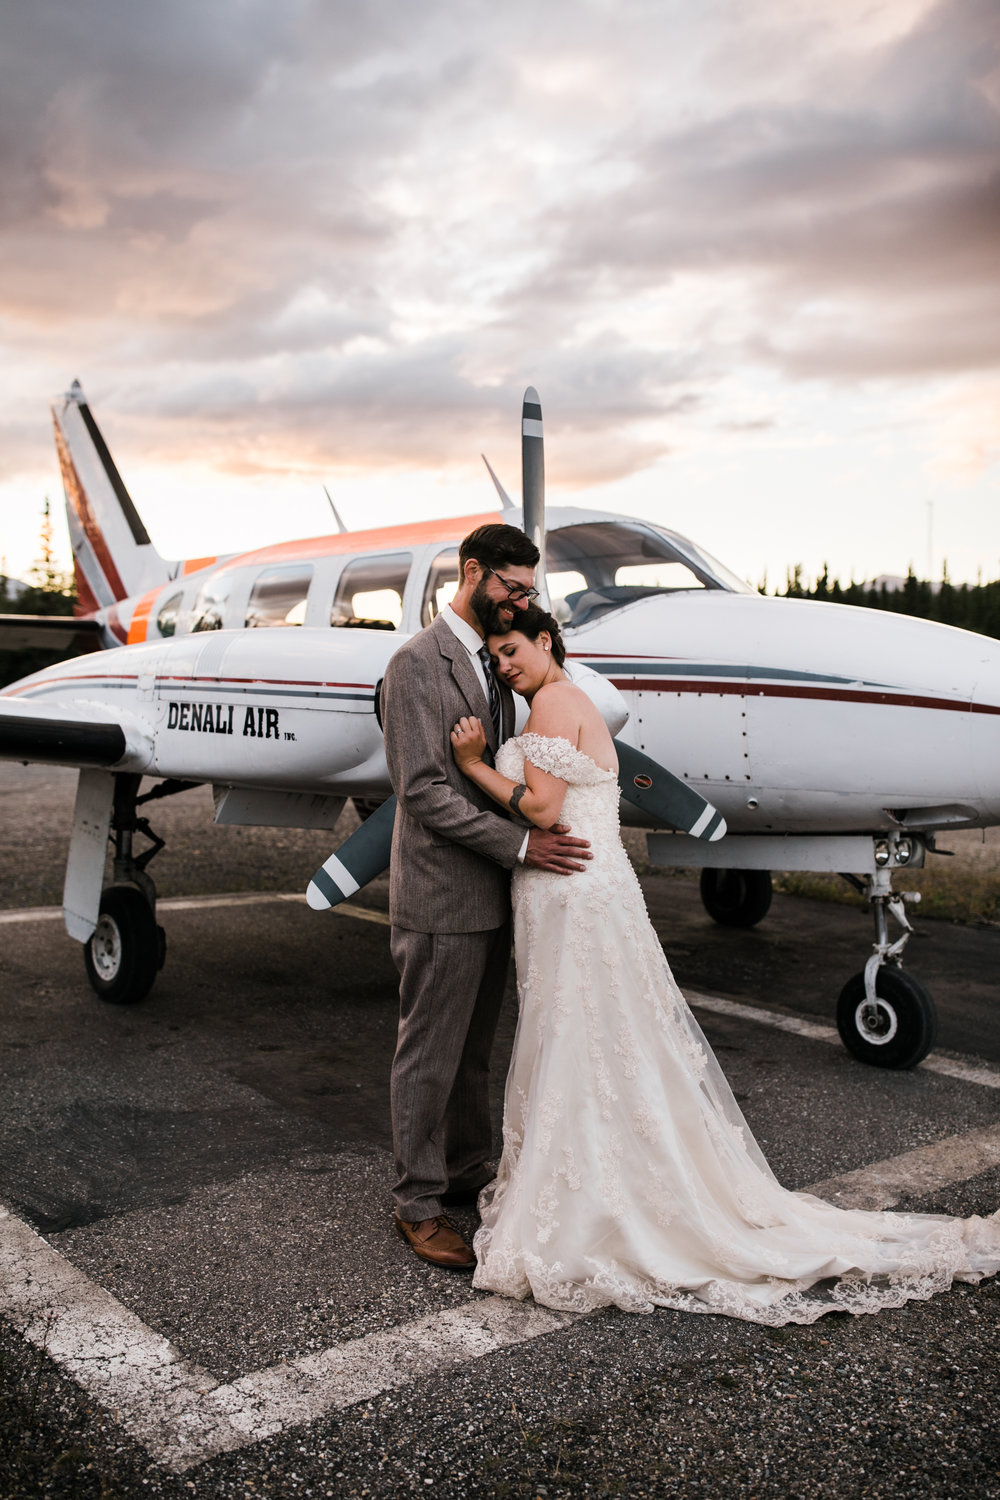 morgan + evan's intimate wedding on the denali airstrip | alaska destination wedding near Denali National Park and Preserve | the hearnes adventure photography